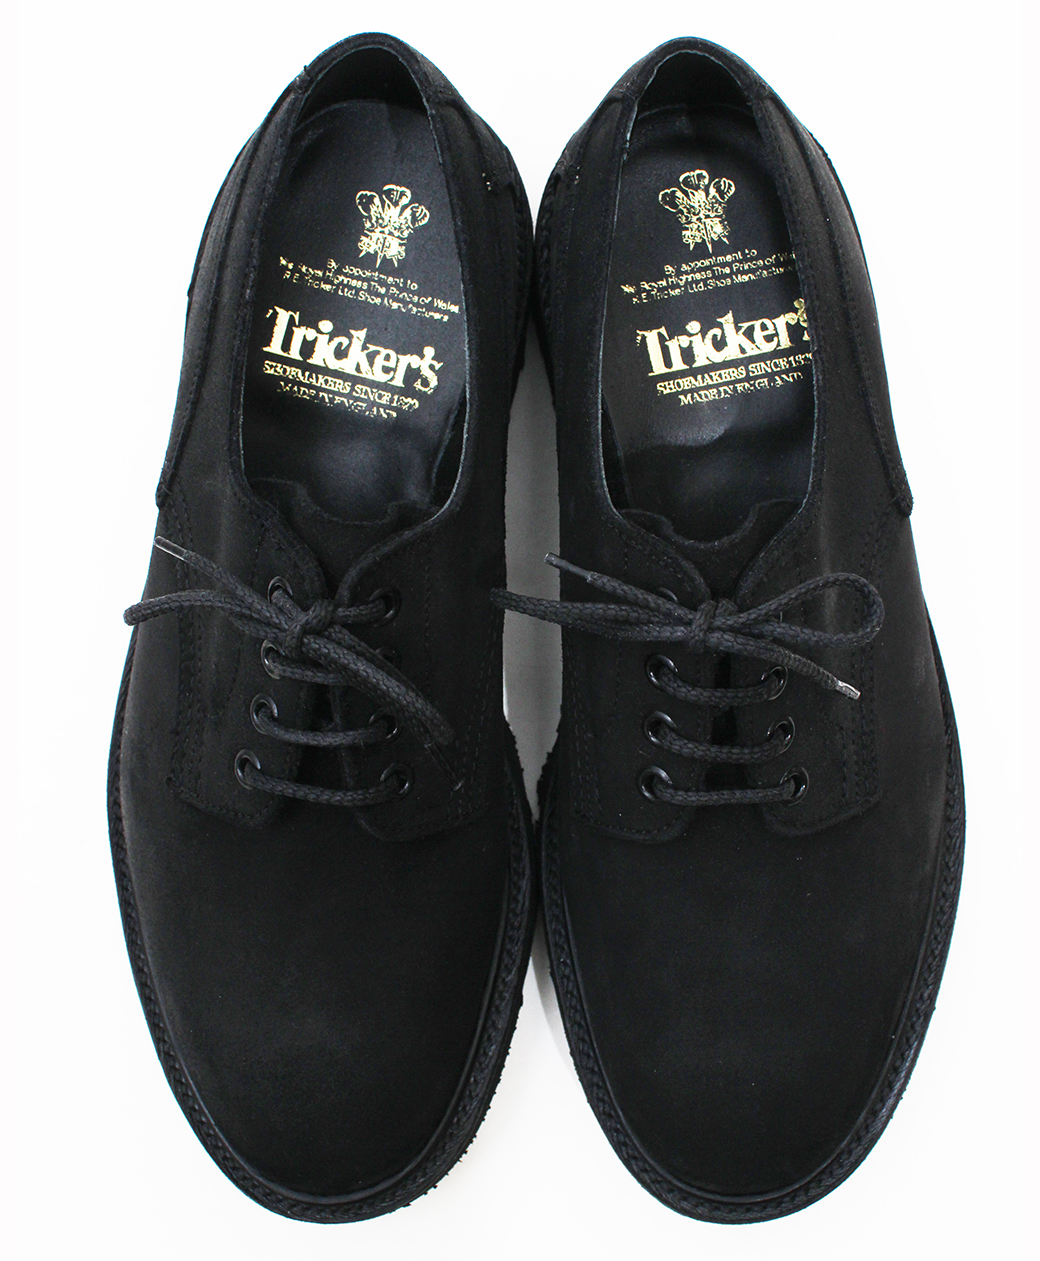 Tricker's 8173 Black Waxy Commando Super Shoes(Black)